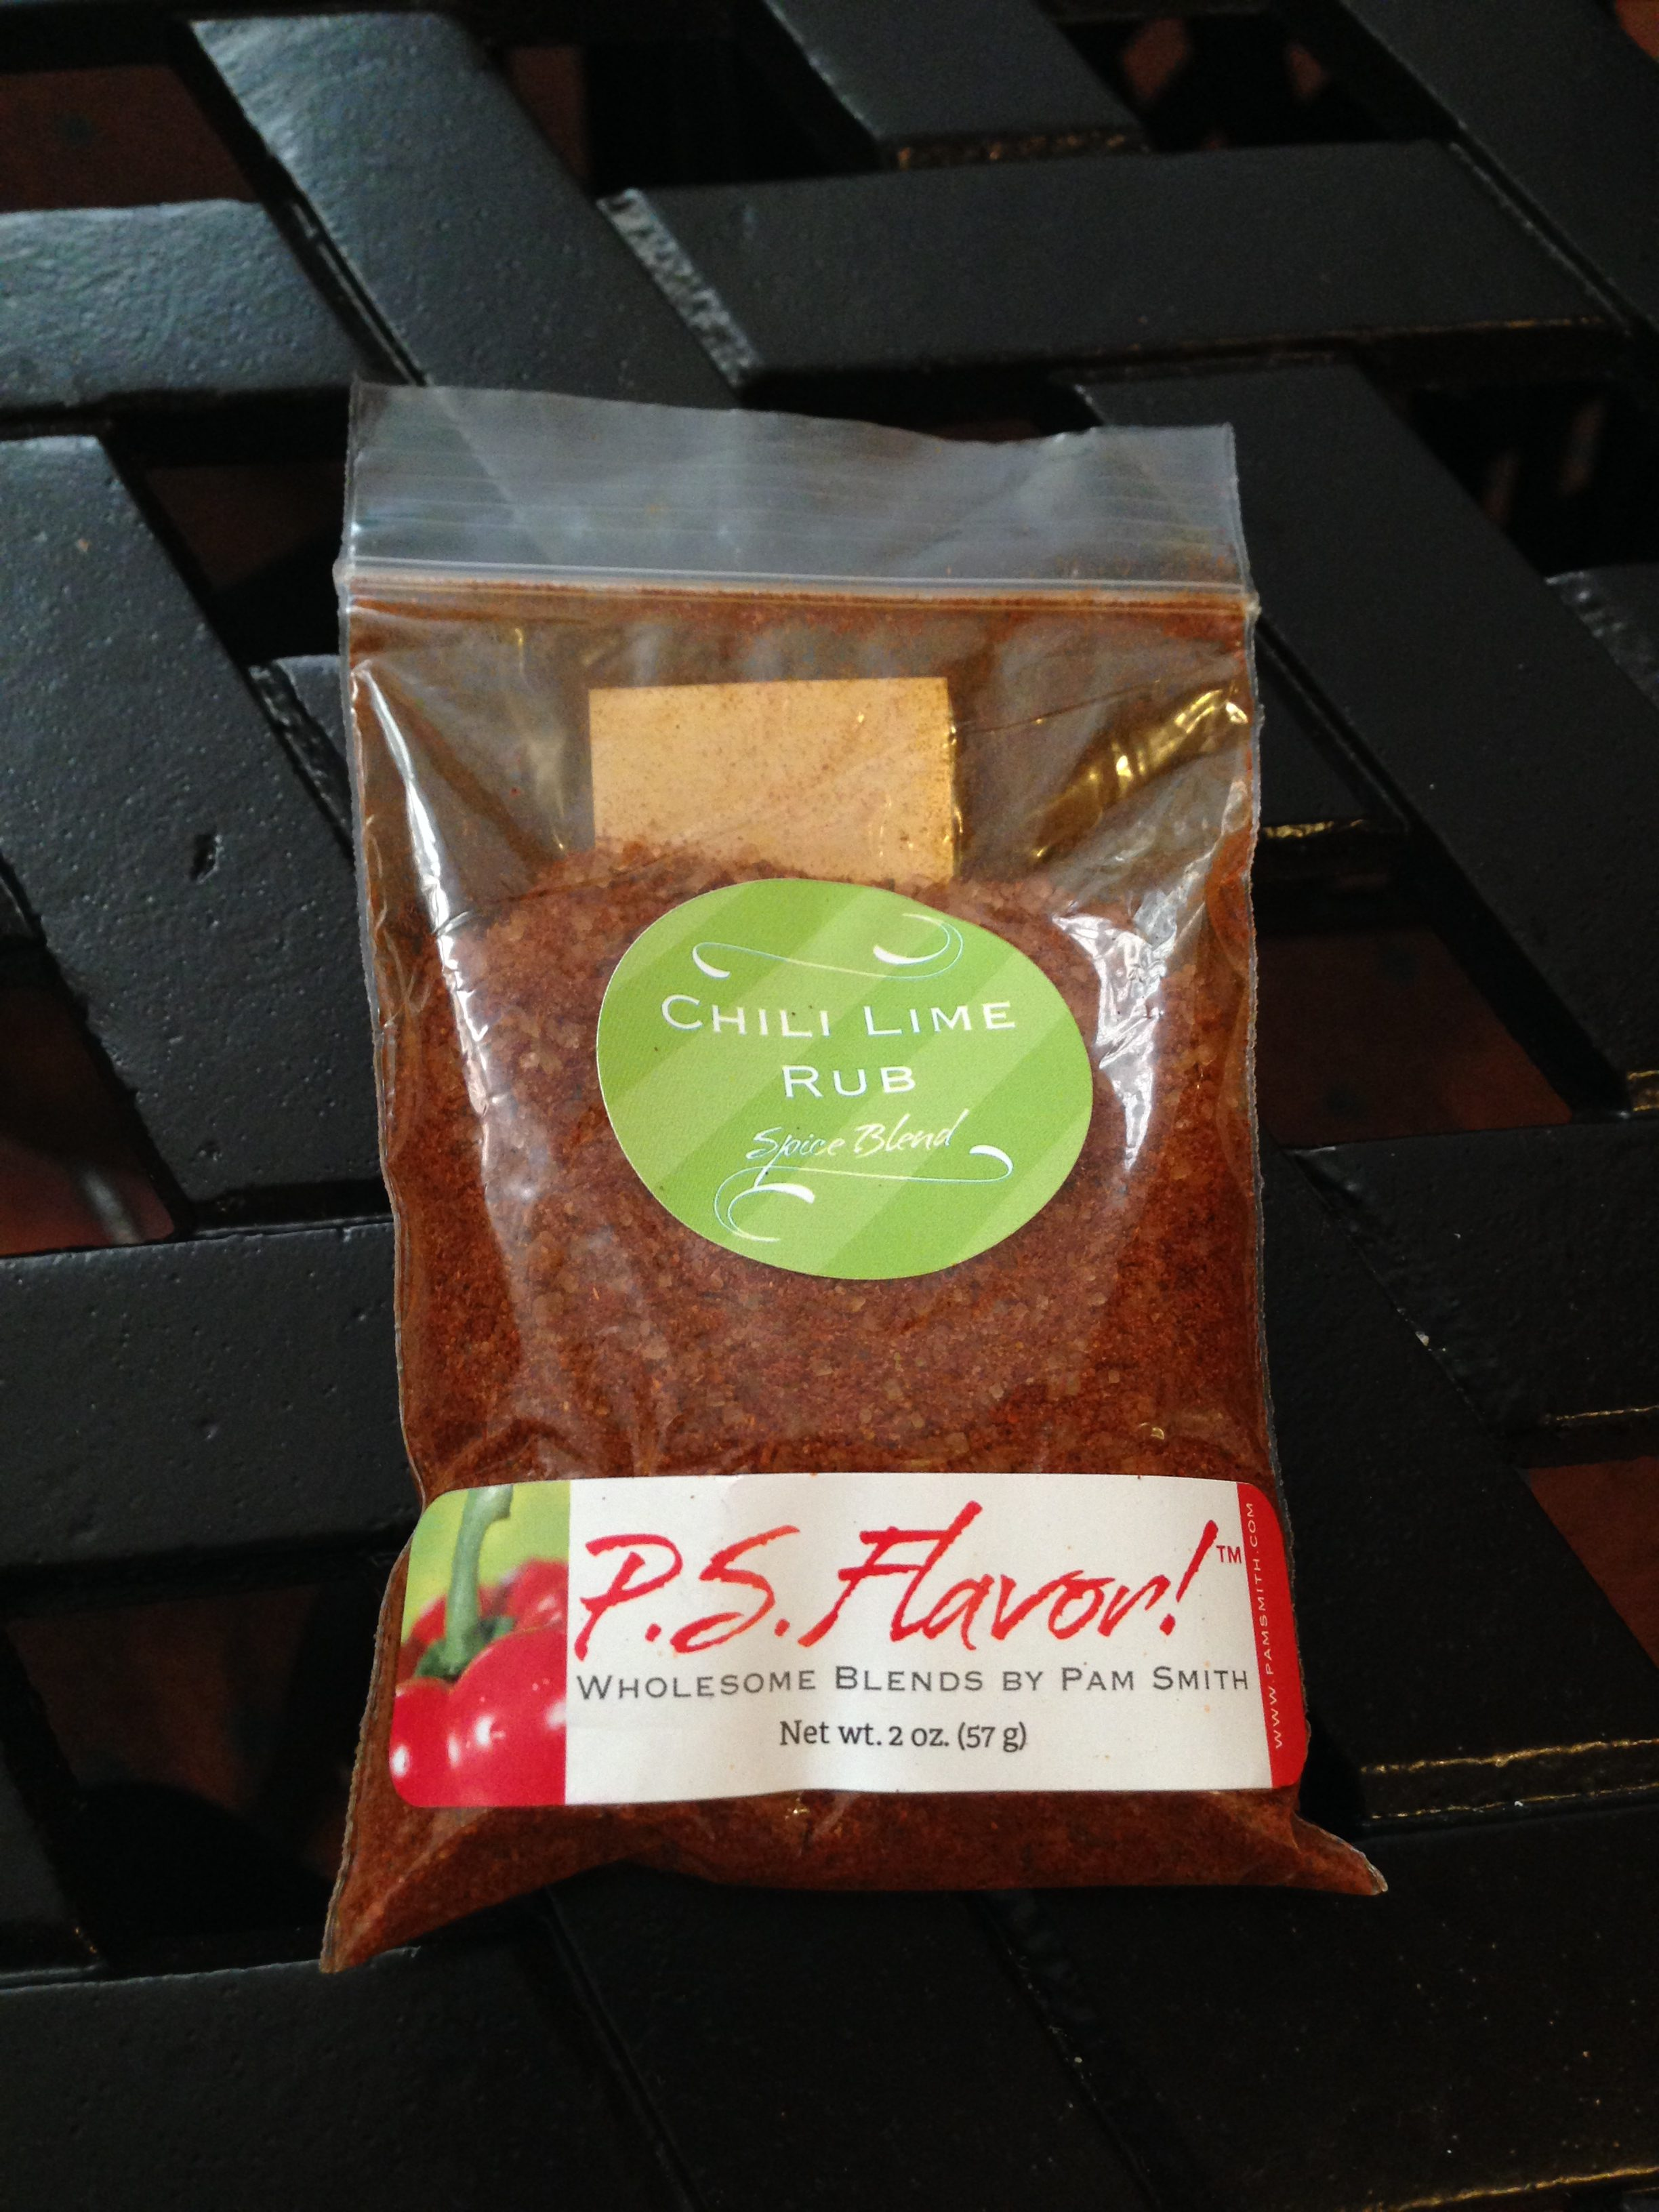 Chili Lime Spice Blend